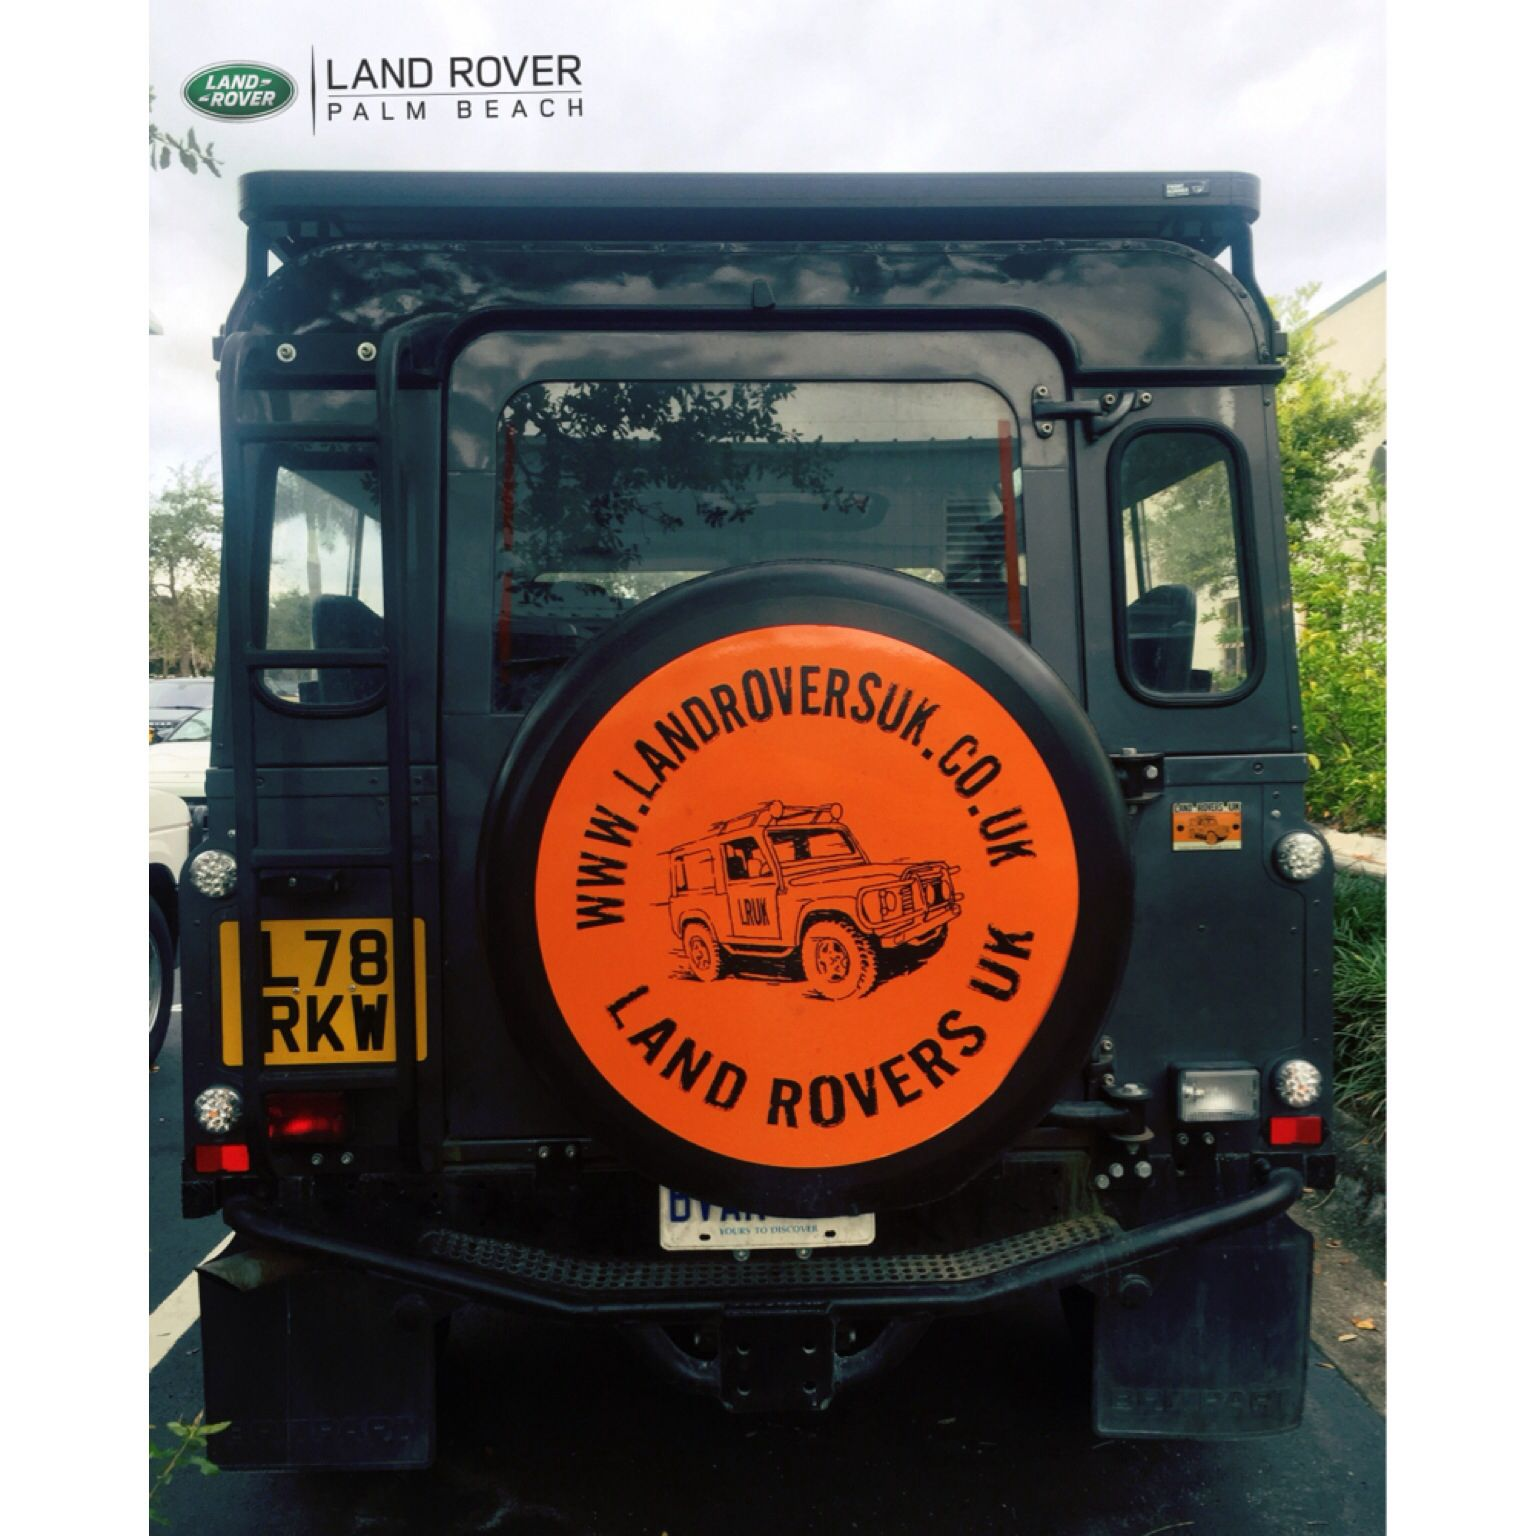 What does your Tire Cover say landroverpalmbeach landrover